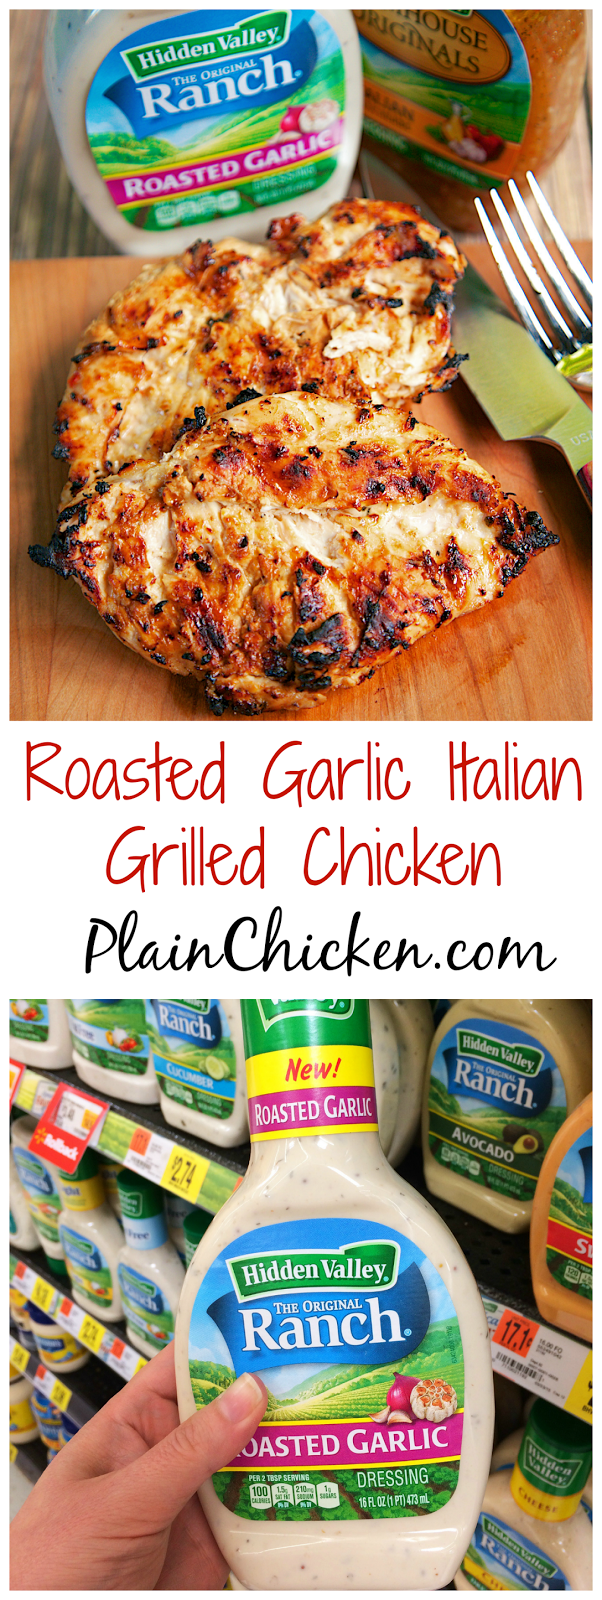 Roasted Garlic Italian Grilled Chicken - only 3 ingredients (including the chicken) - super simple marinade that packs a ton of great flavor! Quick, e...